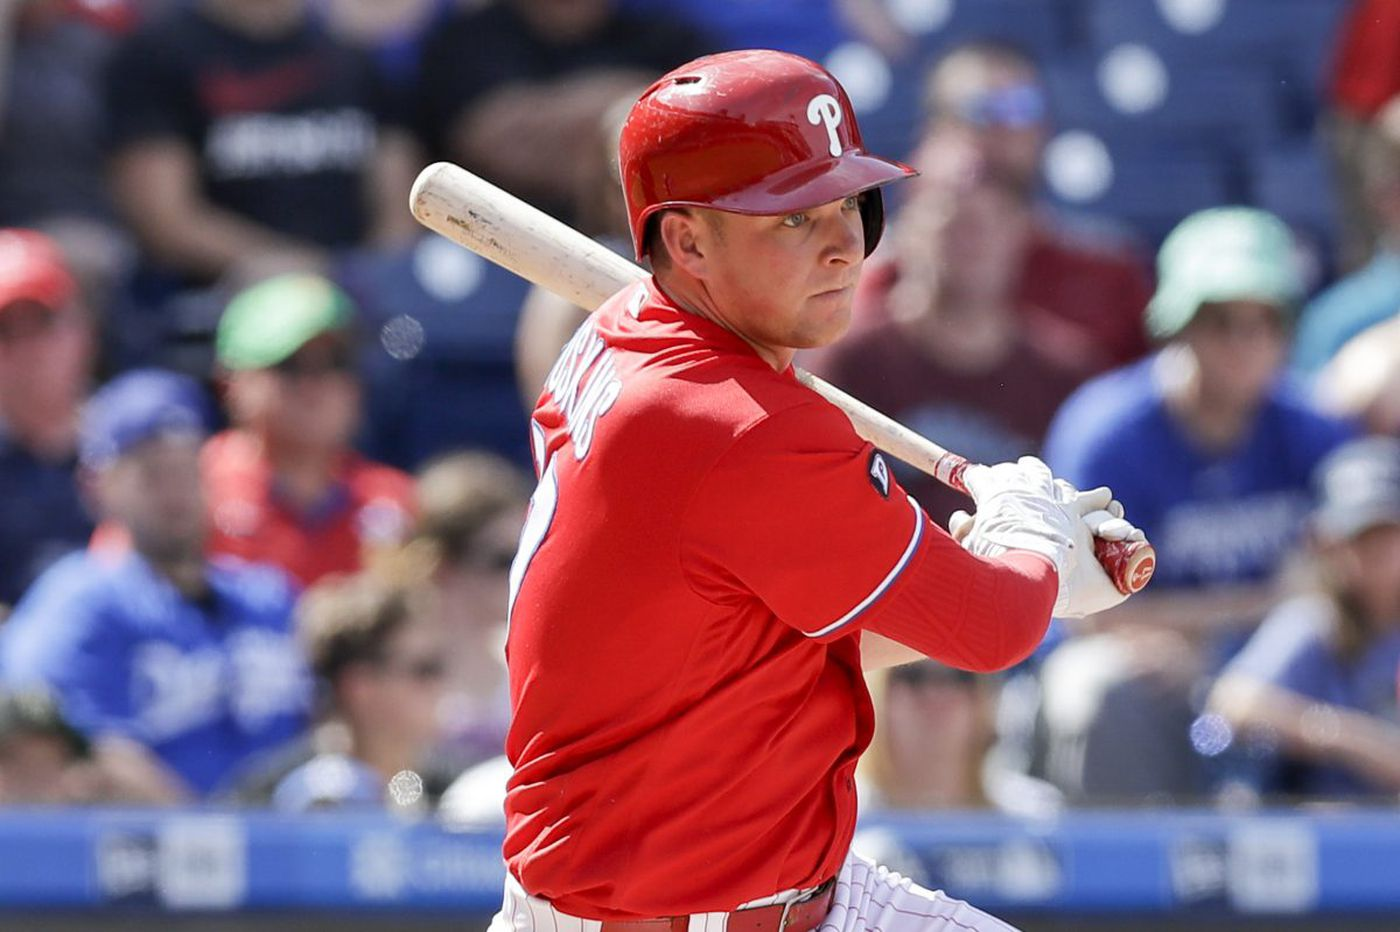 Phillies' Rhys Hoskins excited to play for new manager Gabe Kapler